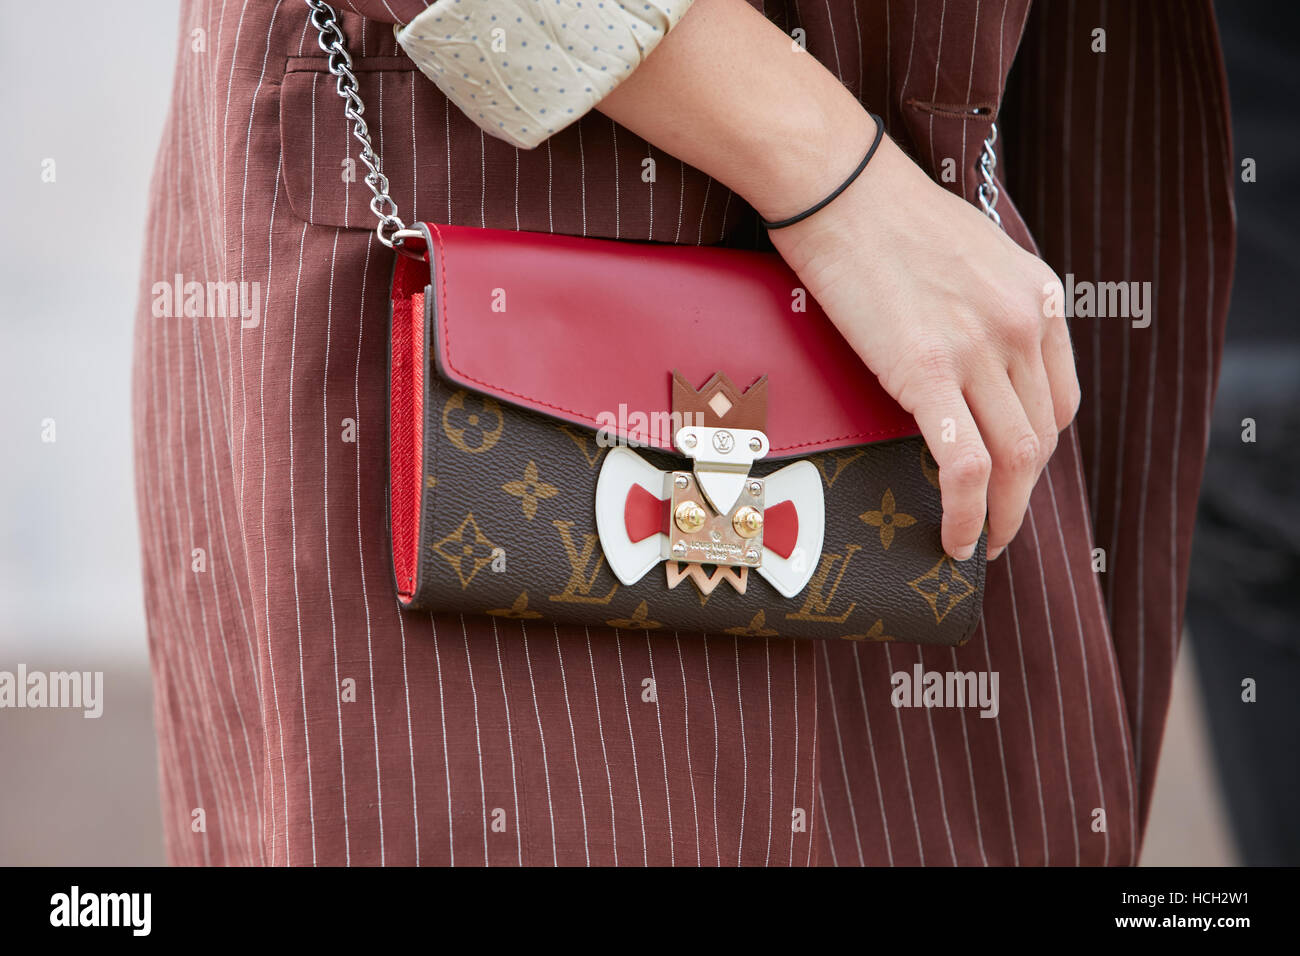 0196c10c5 Woman with Louis Vuitton bag in red leather before Cristiano Burani fashion  show, Milan Fashion